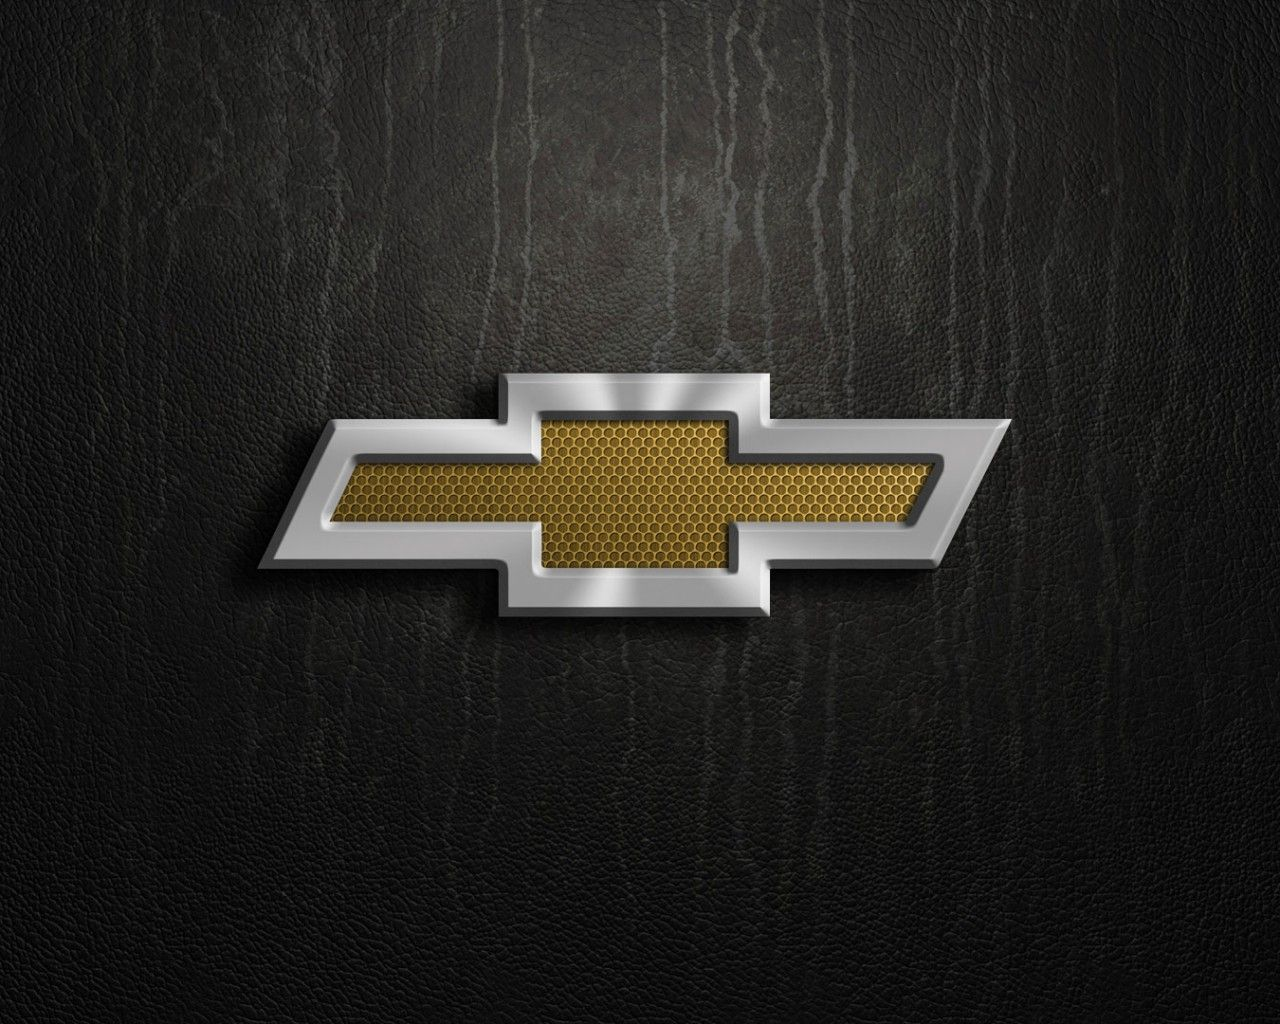 chevy logo wallpaper hd2 - photo #3